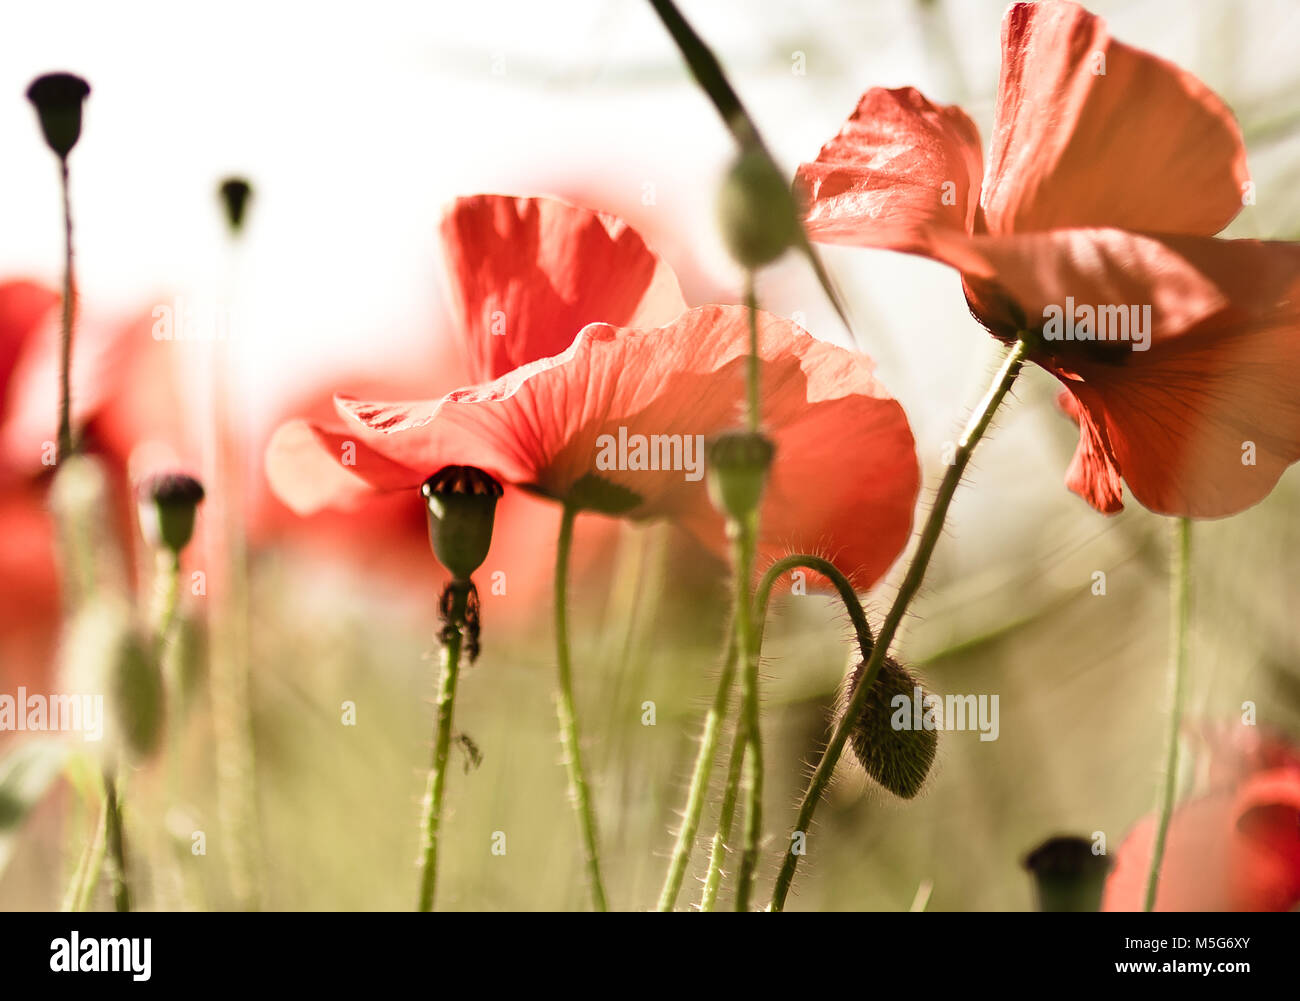 A location shoot of poppies by Claire Allen LRPS in Devizes, Wiltshire. www.wiltshireartandphotography.co.uk - Stock Image